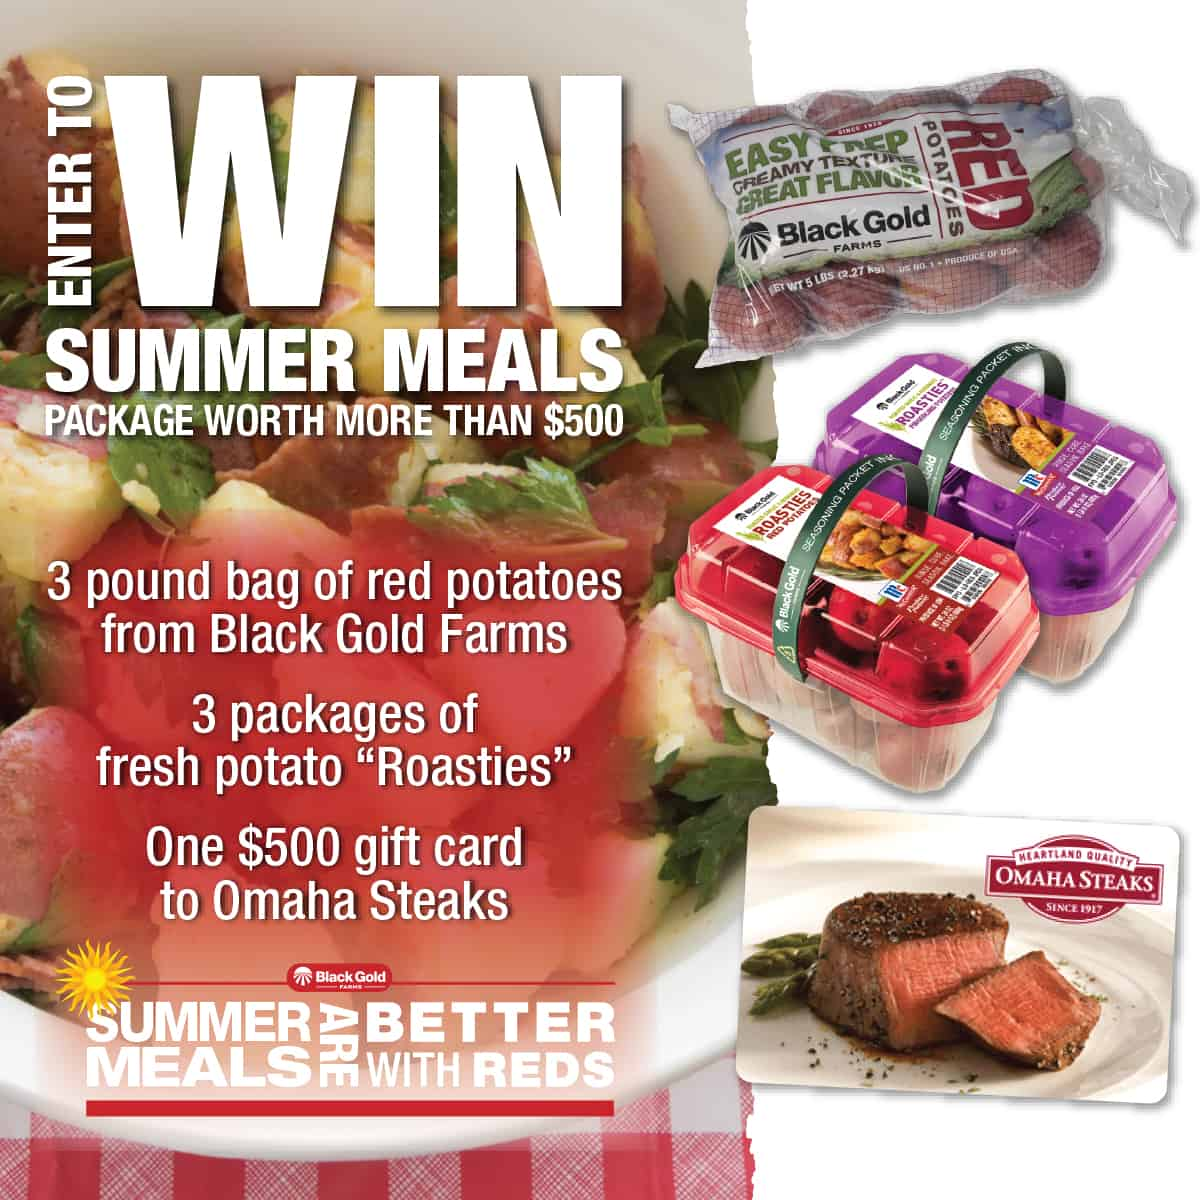 #Giveaway $500 Omaha Steaks gift card + red potatoes! Enter at afarmgirlsdabbles.com - #SummerFood #BetterWithReds #potatoes #redpotatoes #steak